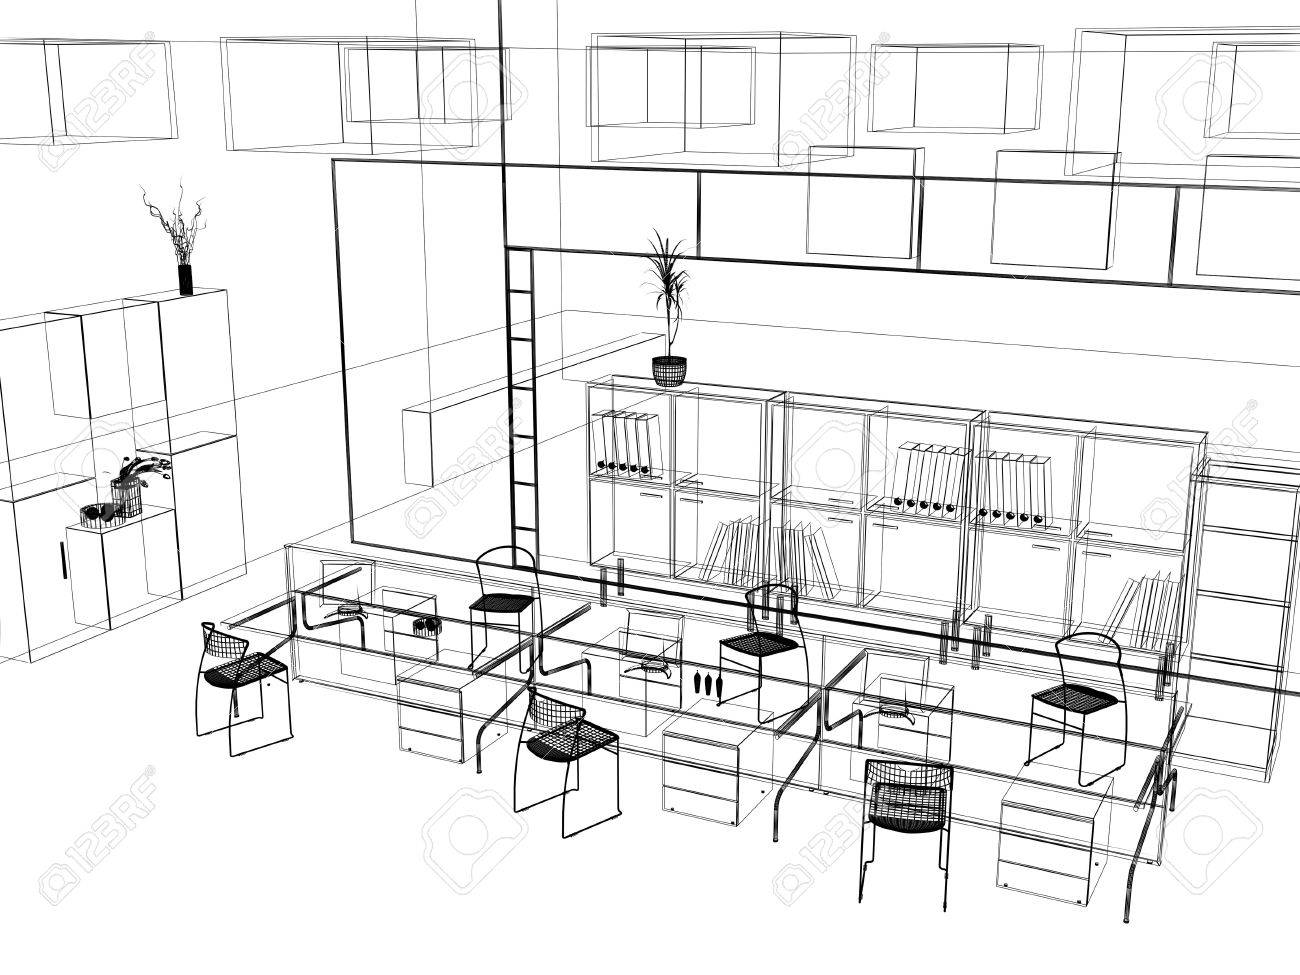 Interior Design Office Sketches brilliant interior design office sketches perspective black and